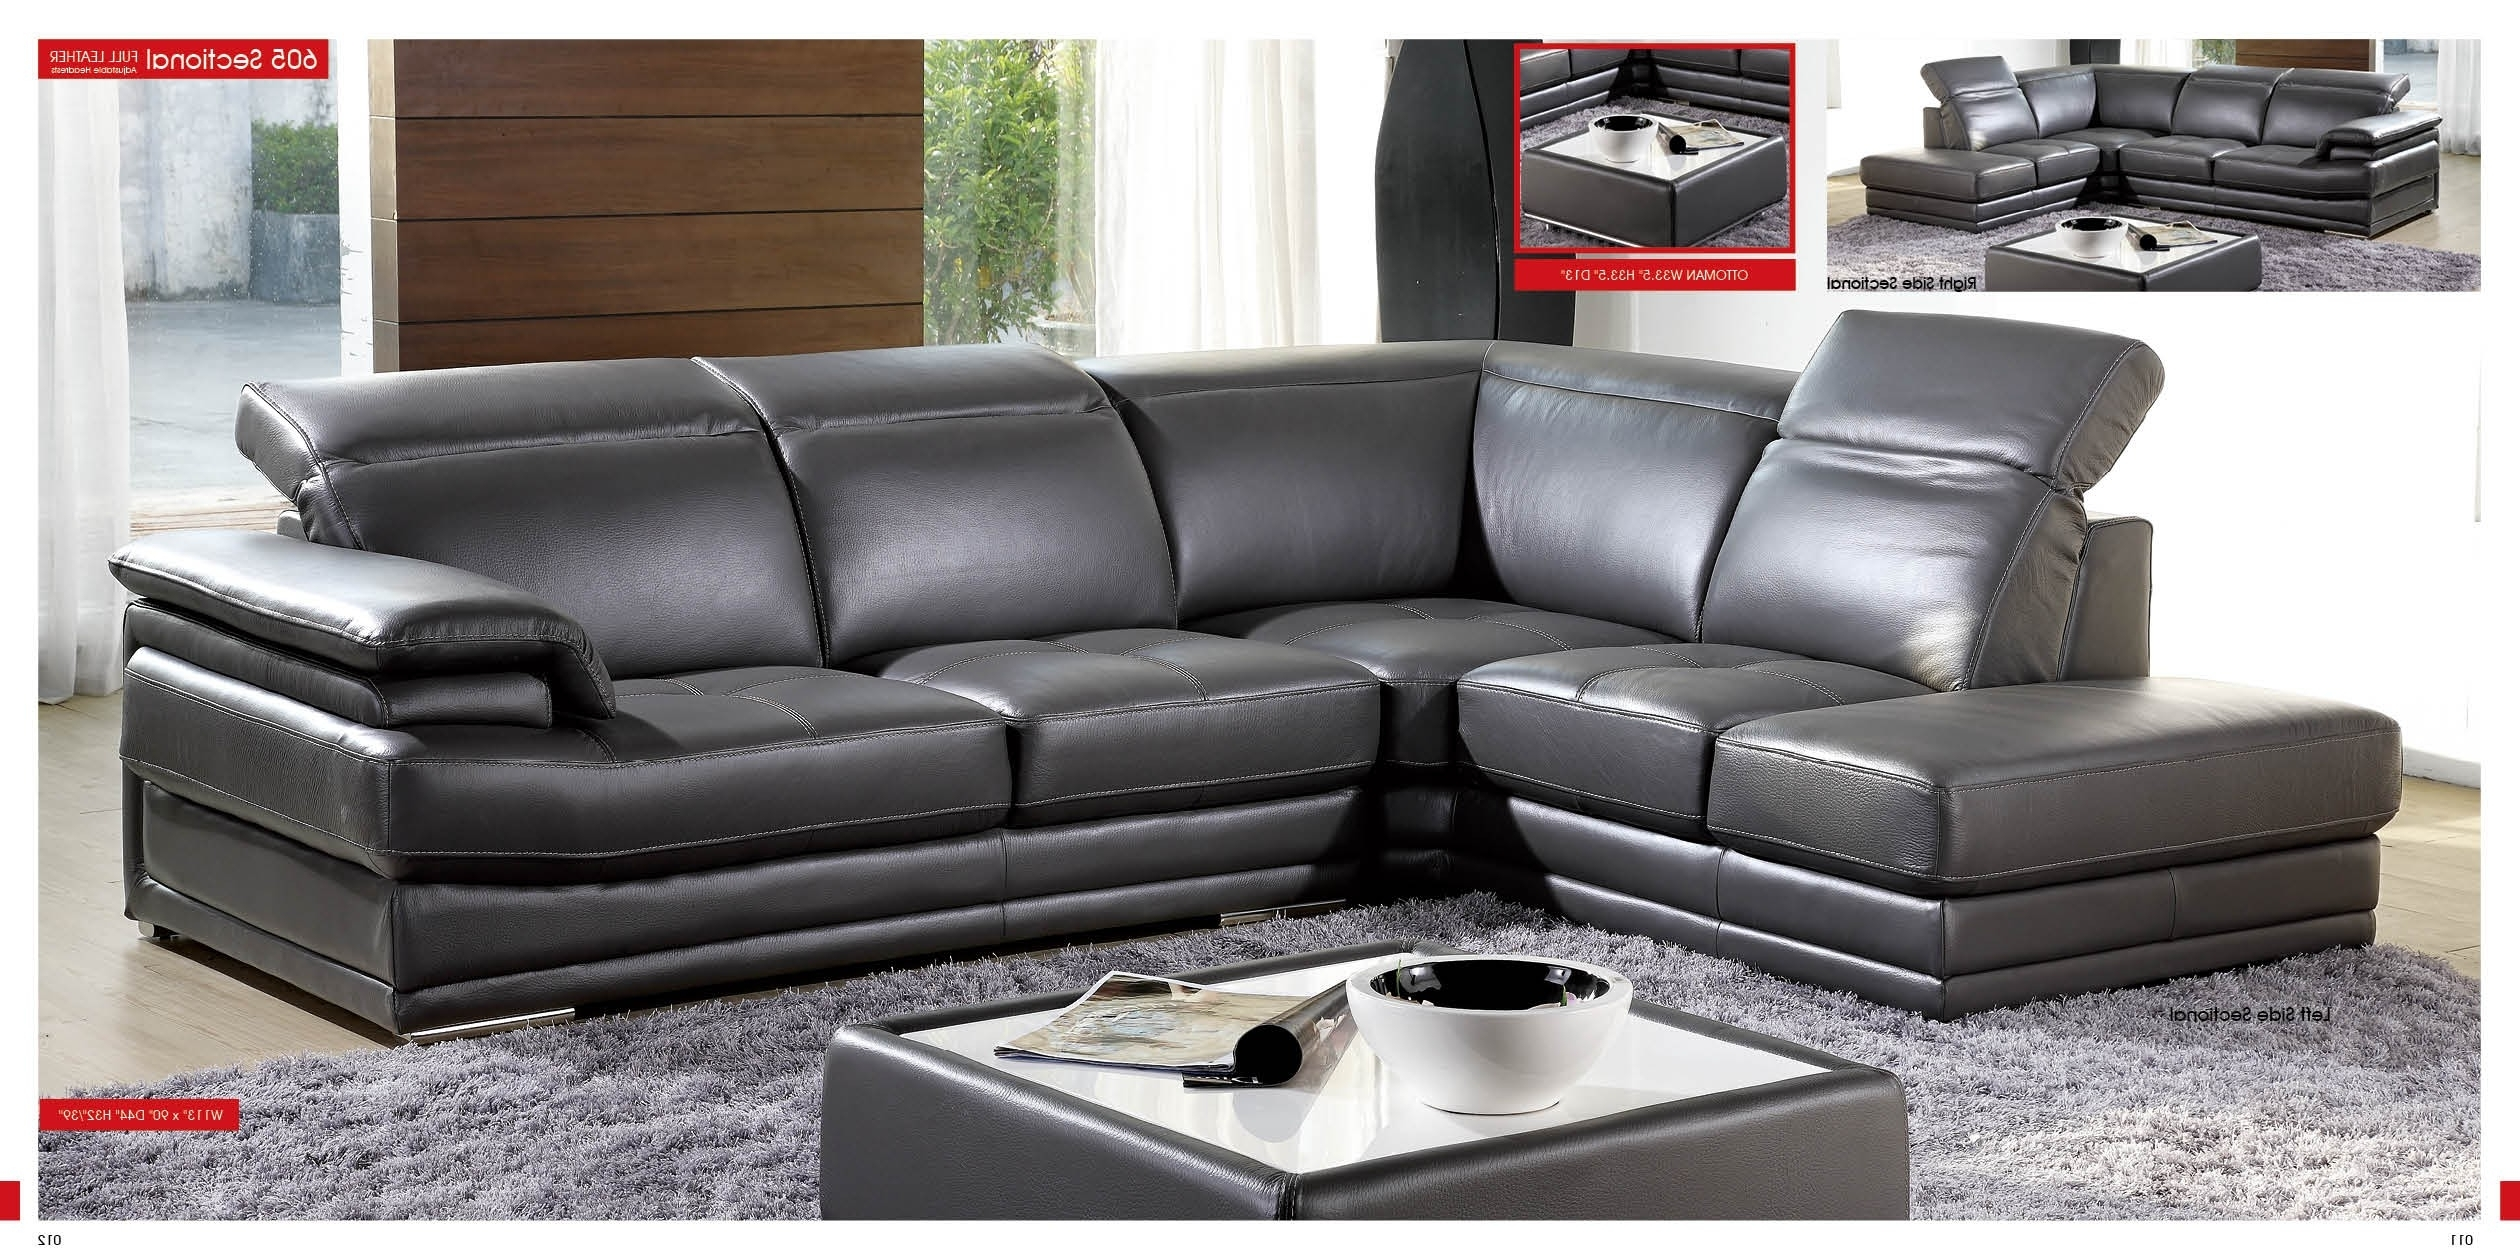 2017 Recliners Chairs & Sofa : Modular Sectional Sofa Leather Couches Inside Leather Modular Sectional Sofas (View 1 of 15)